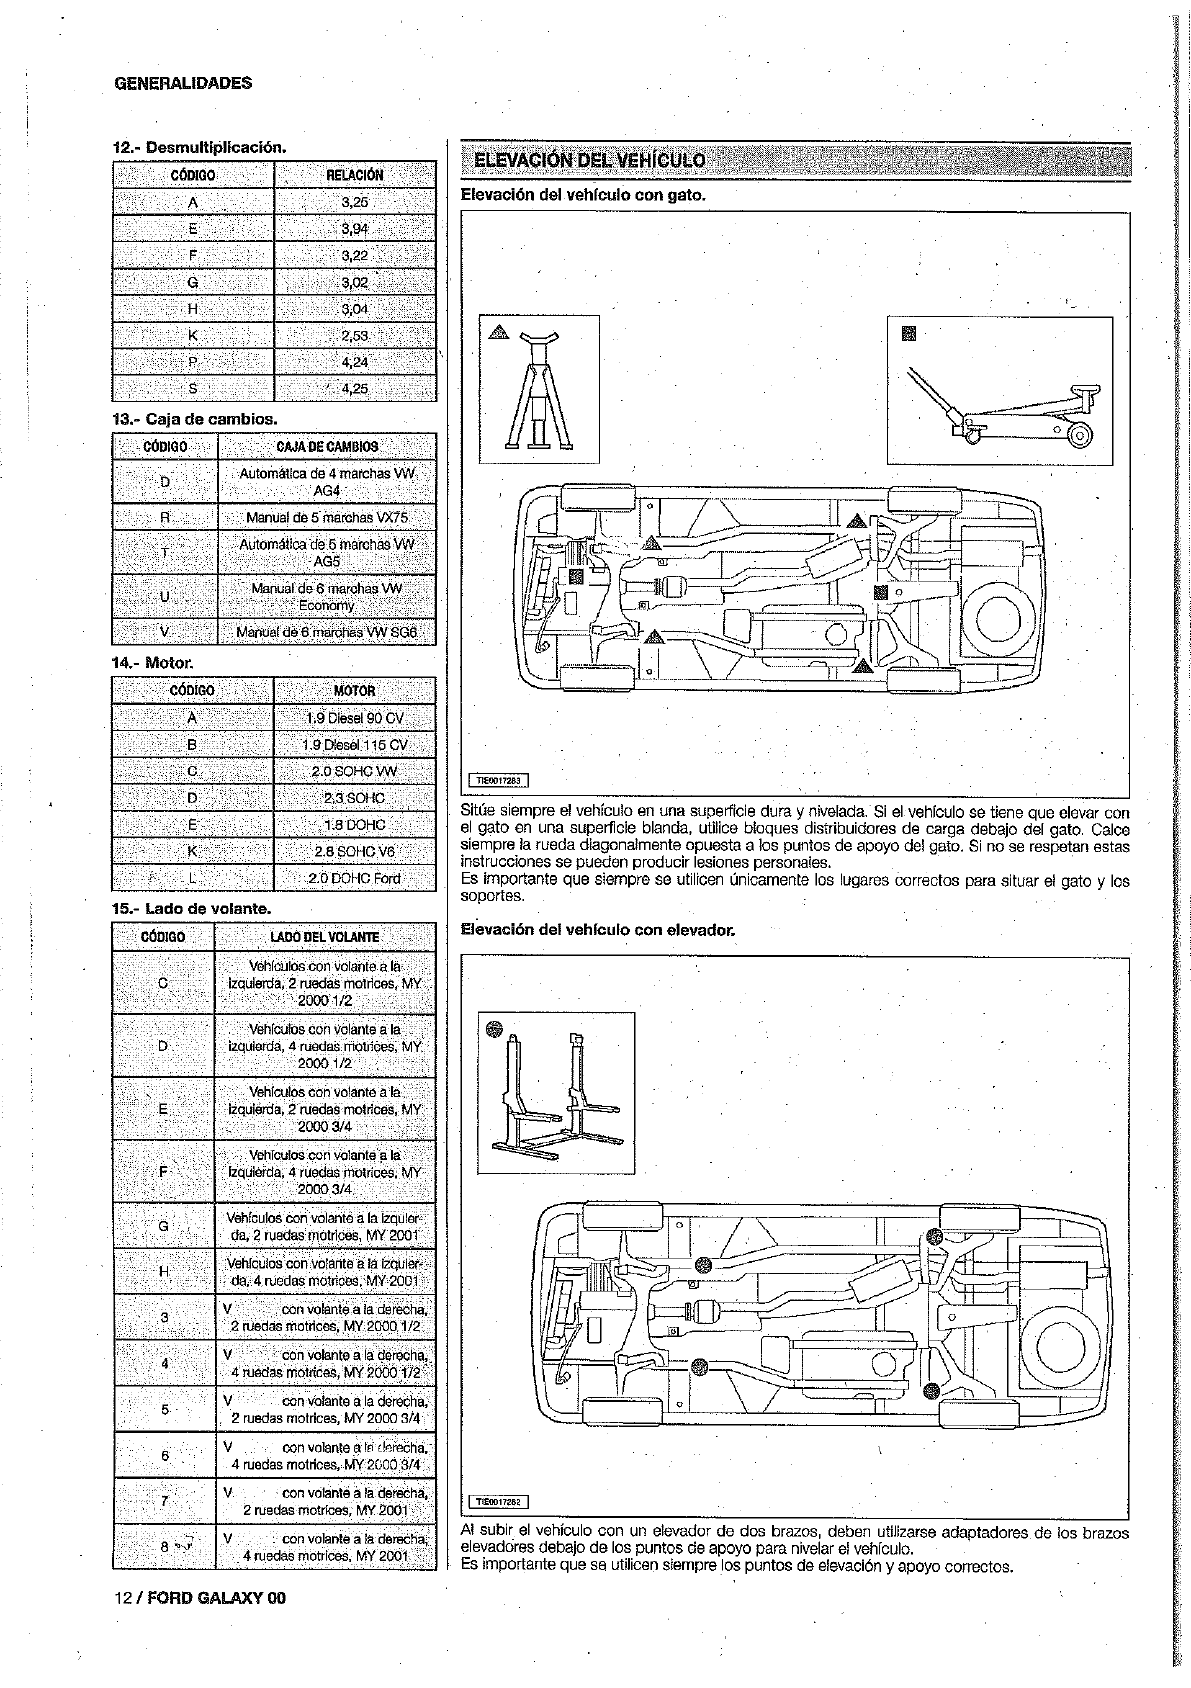 ford galaxy 2000 workshop manual spanish pdf Ford Galaxy 7 Seater ford galaxy workshop manual download